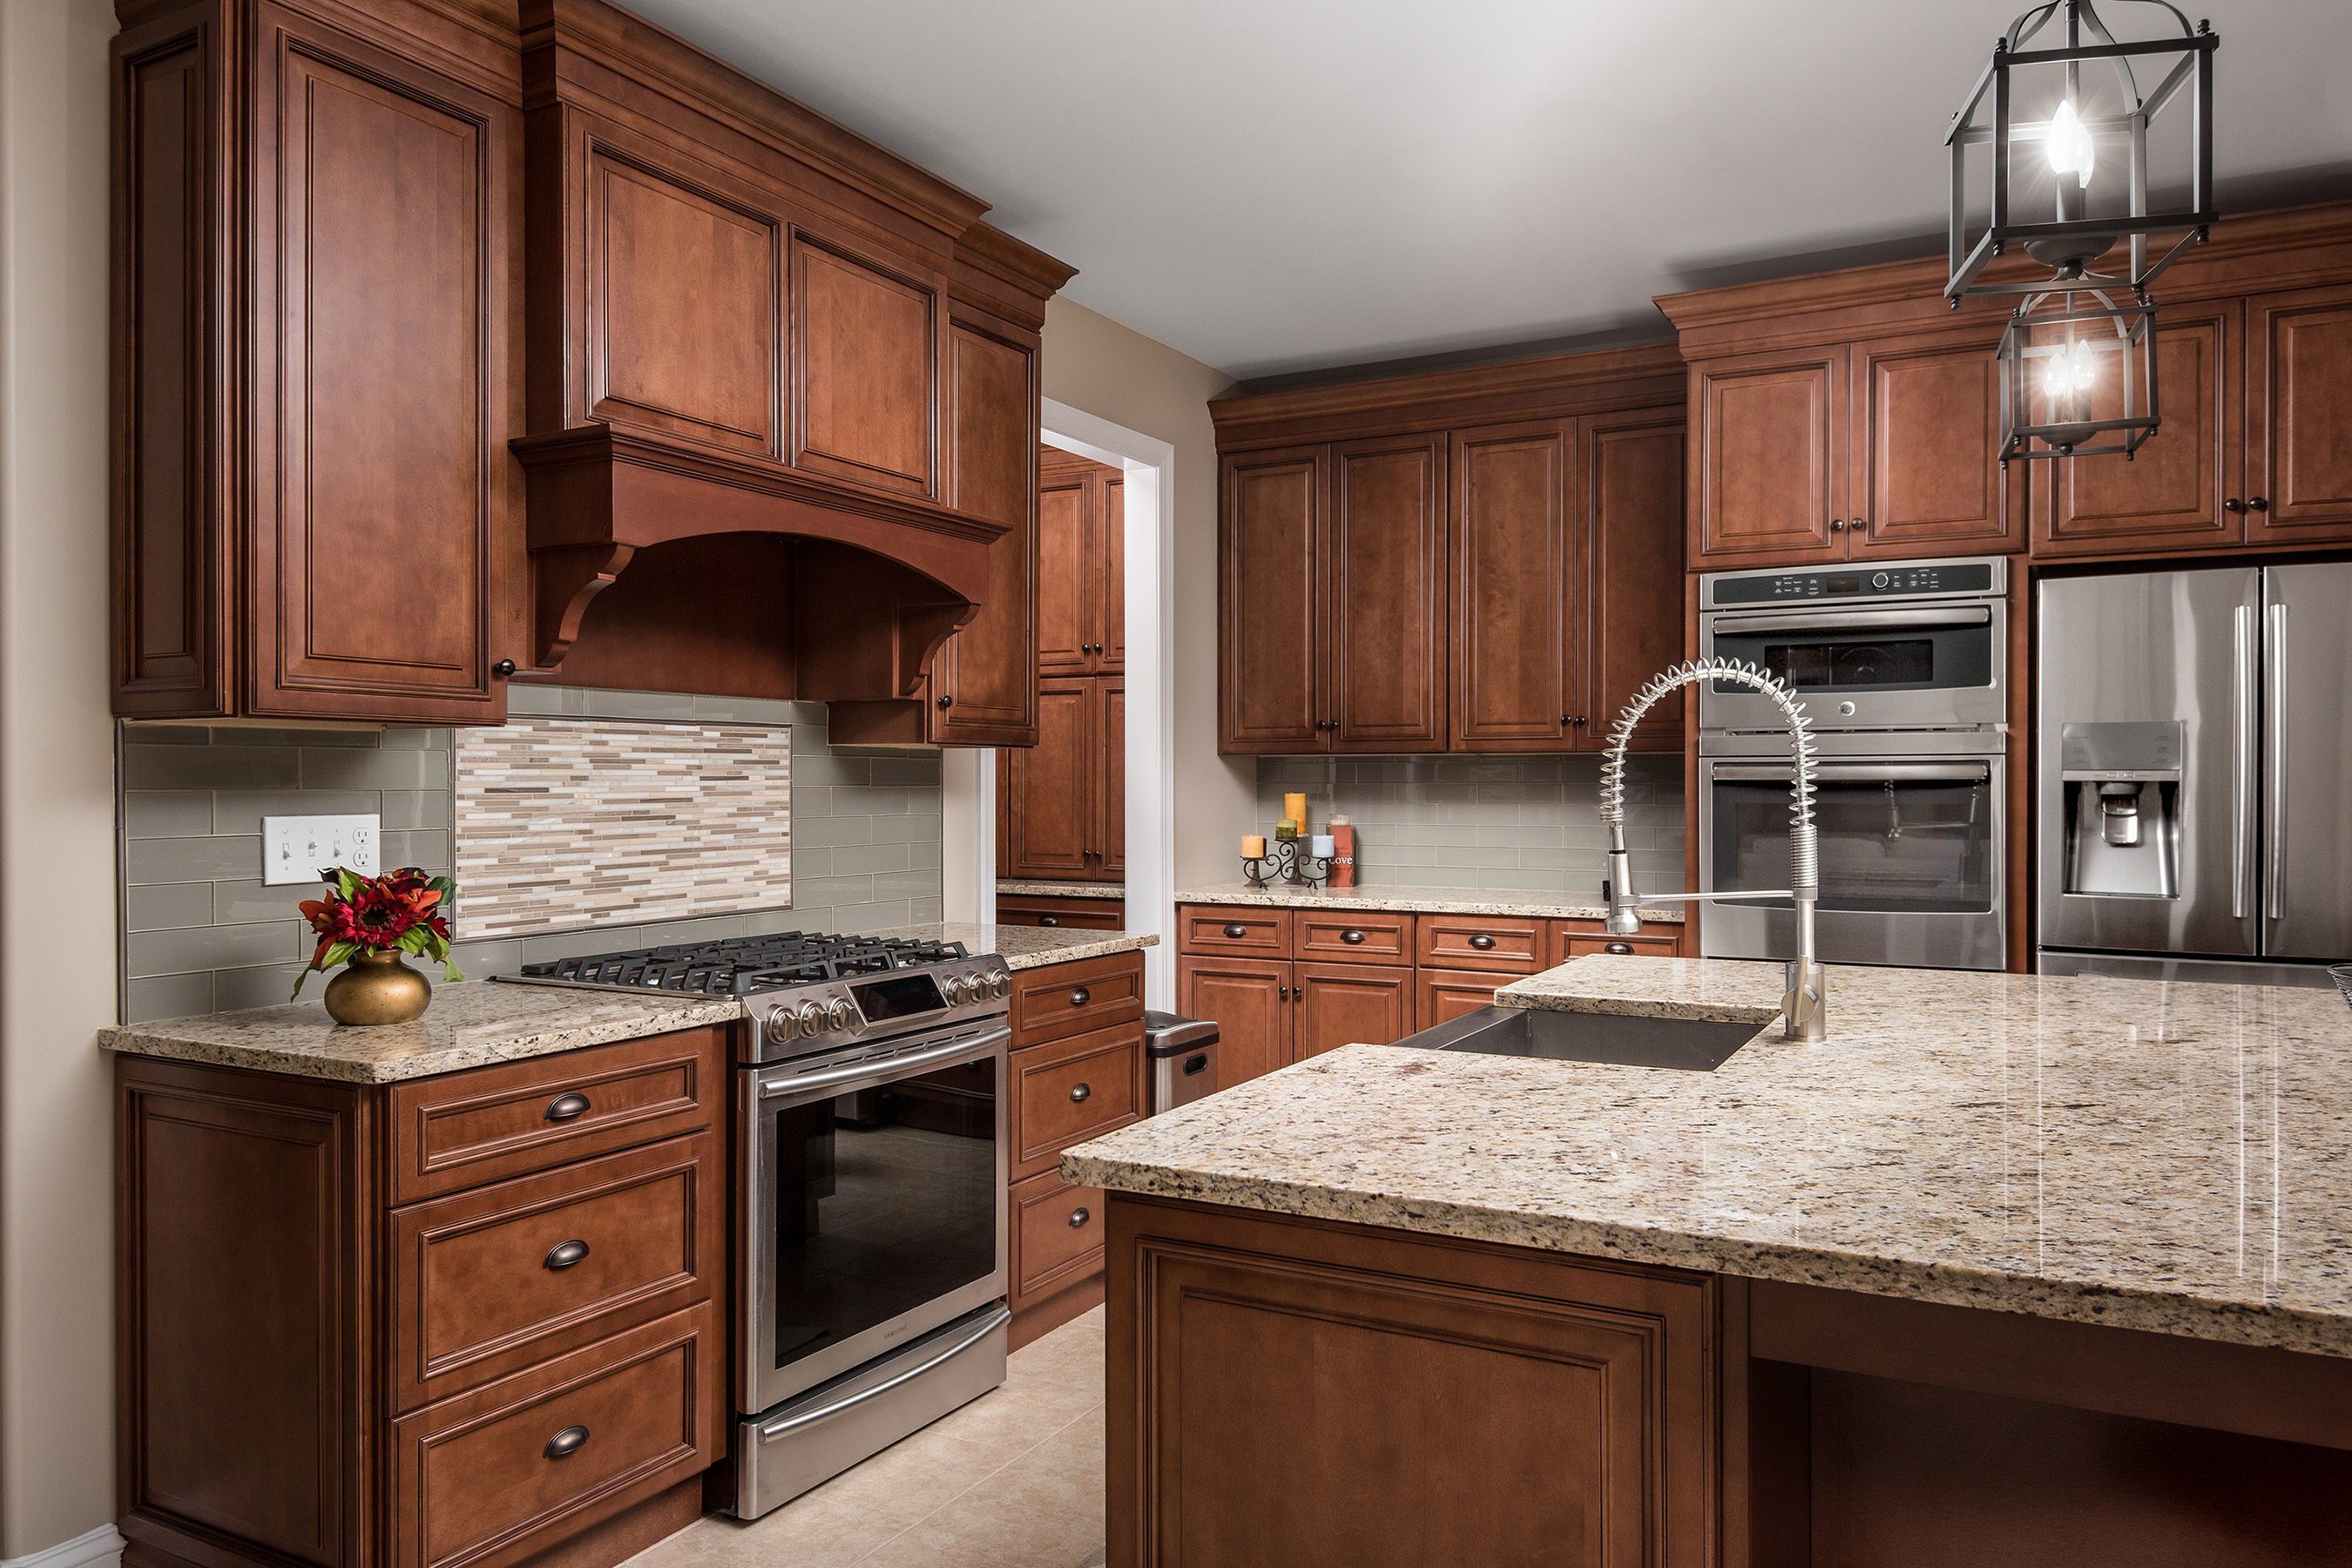 Kitchen Remodel | Kitchen Cabinets \u0026 Beyond | Orange County, CA